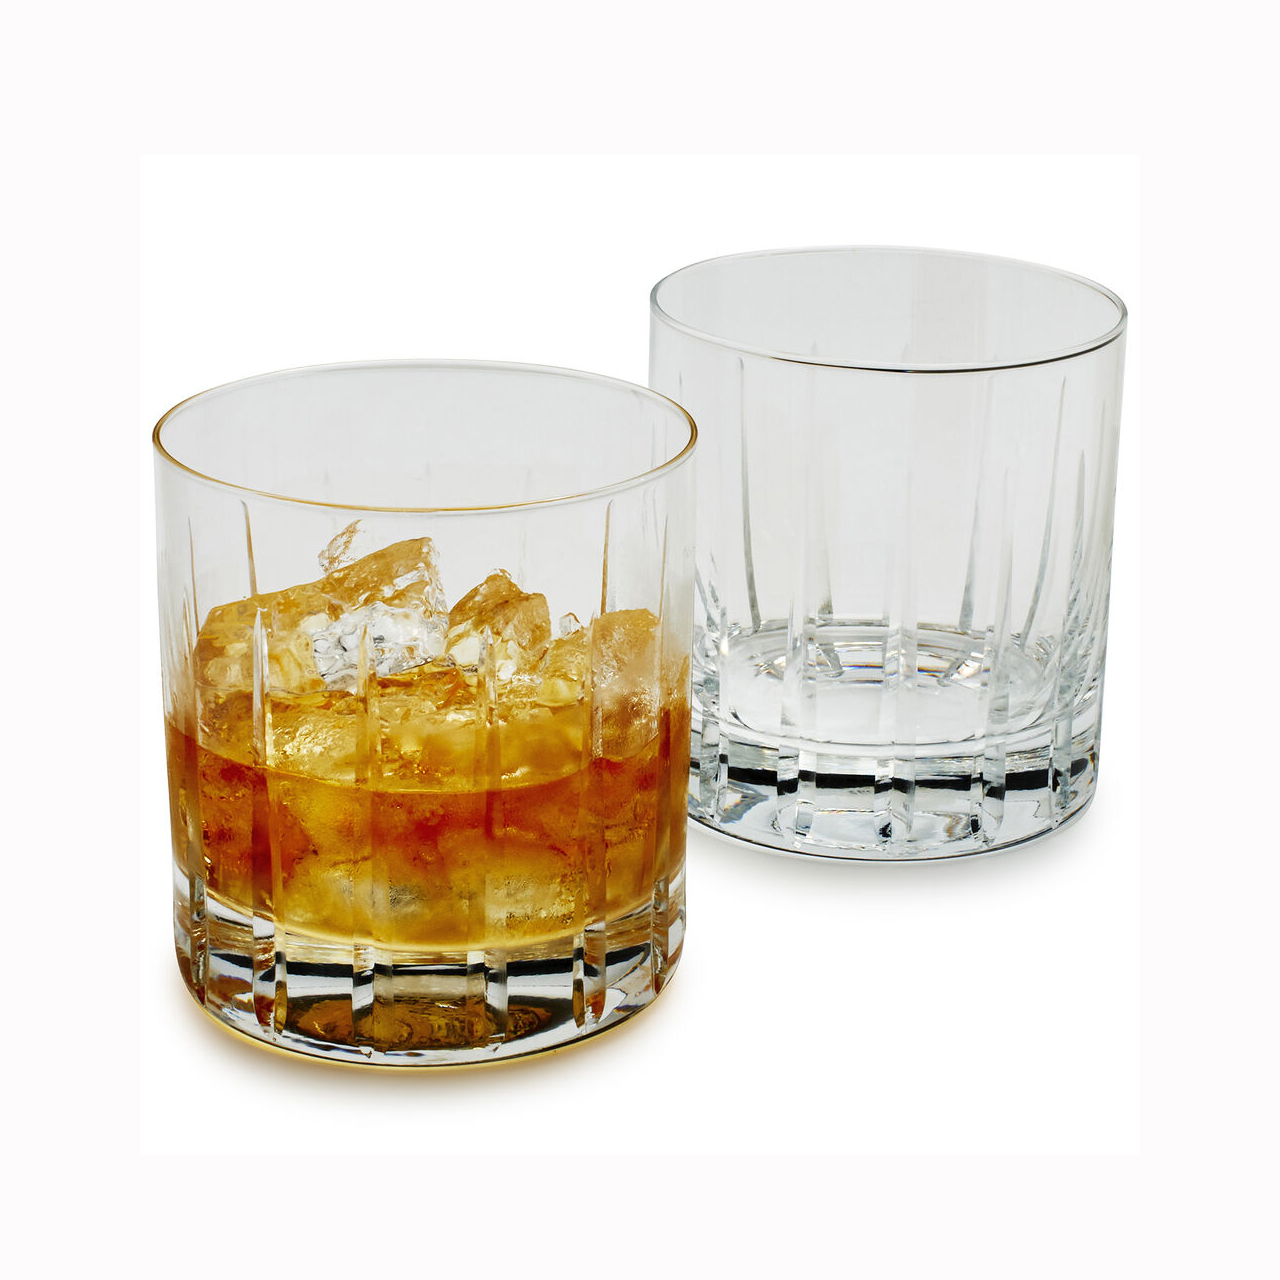 Valentine's Day gifts for him - Schott Zwiesel Kirkwall Double Old Fashioned Rocks Glass